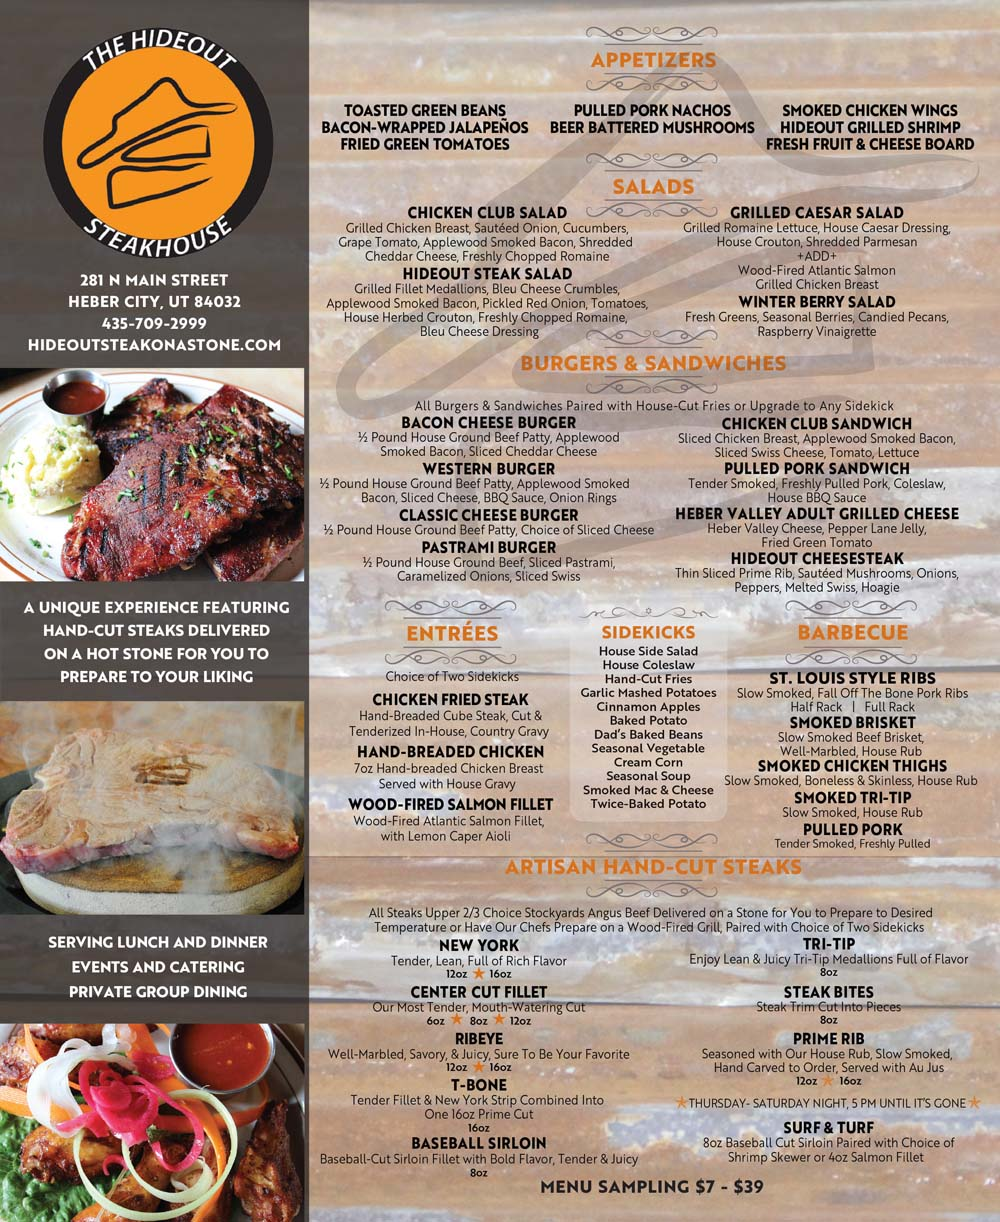 The Hideout Steakhouse – Heber Valley Steakhouse